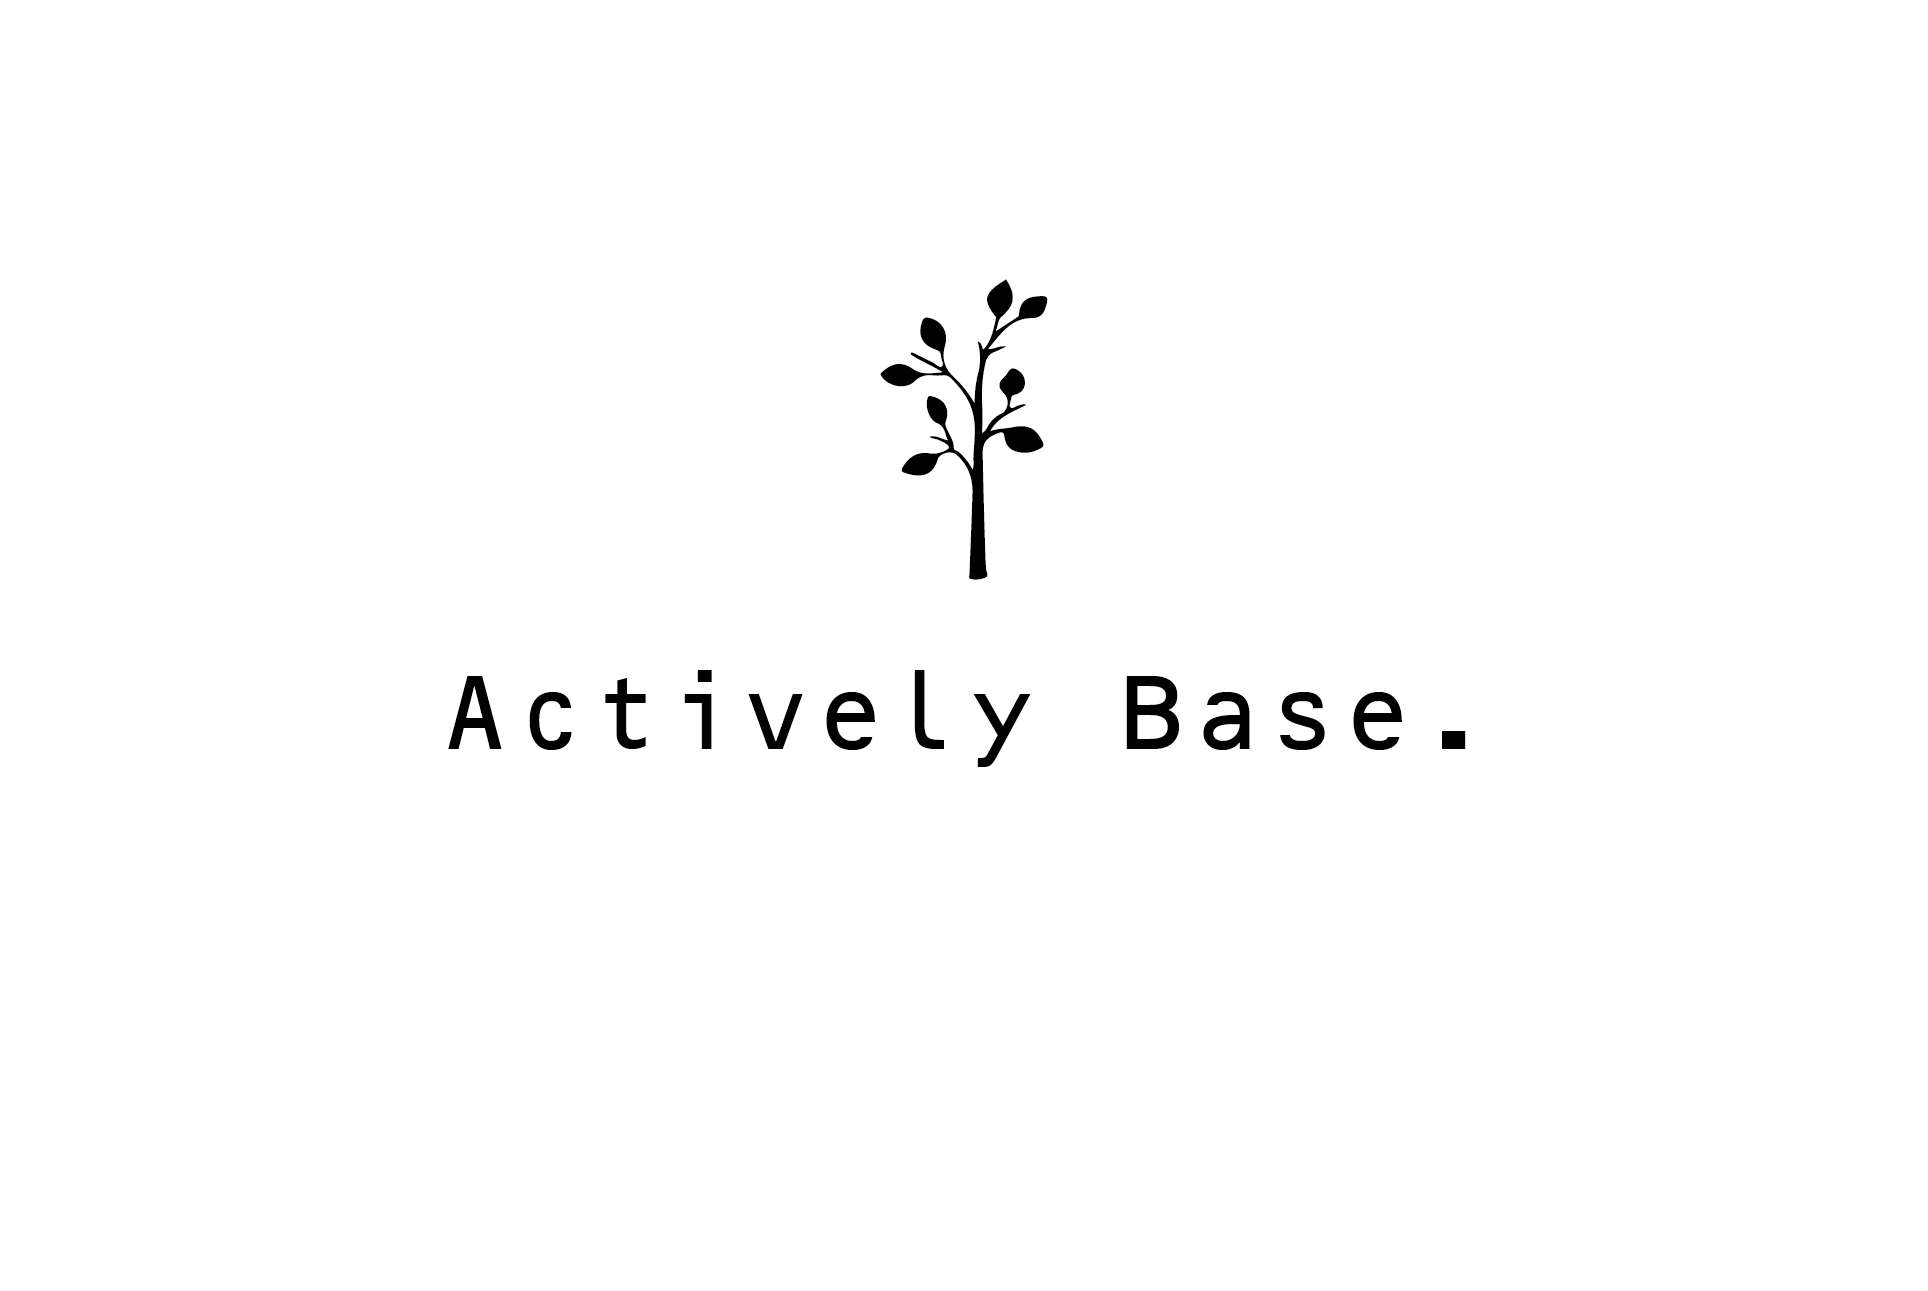 Actively Base.